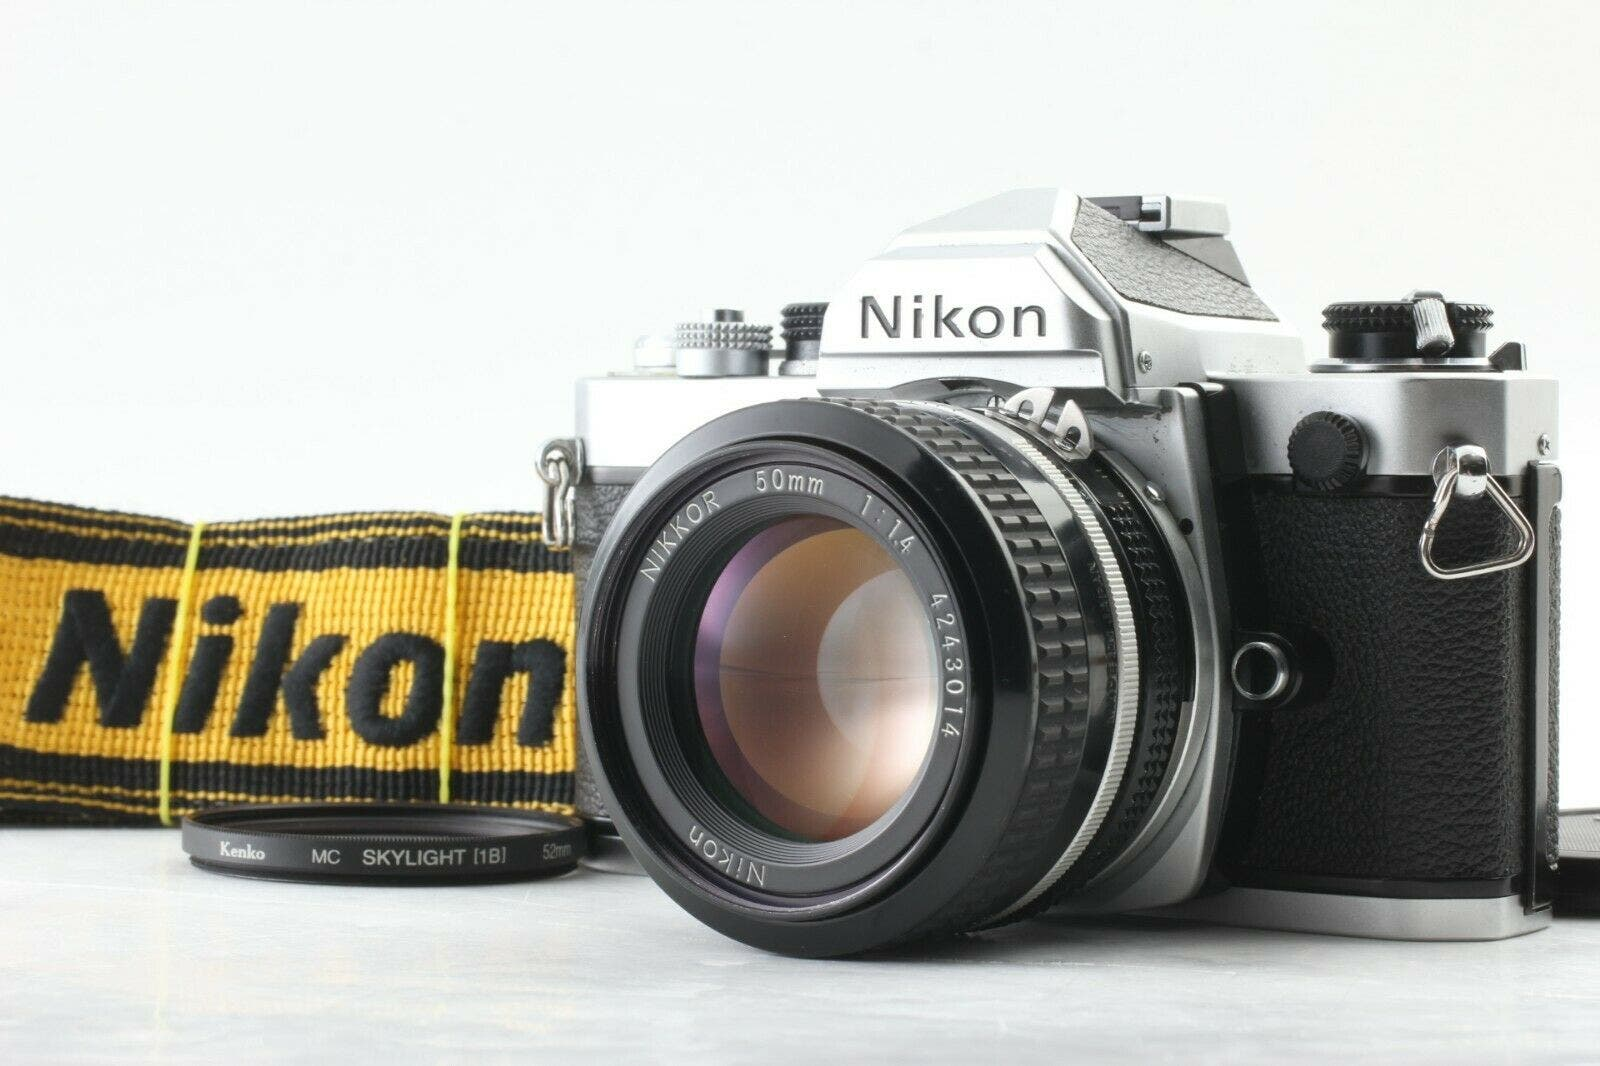 If You've Been Wanting a Nikon FM, Grab One NOW